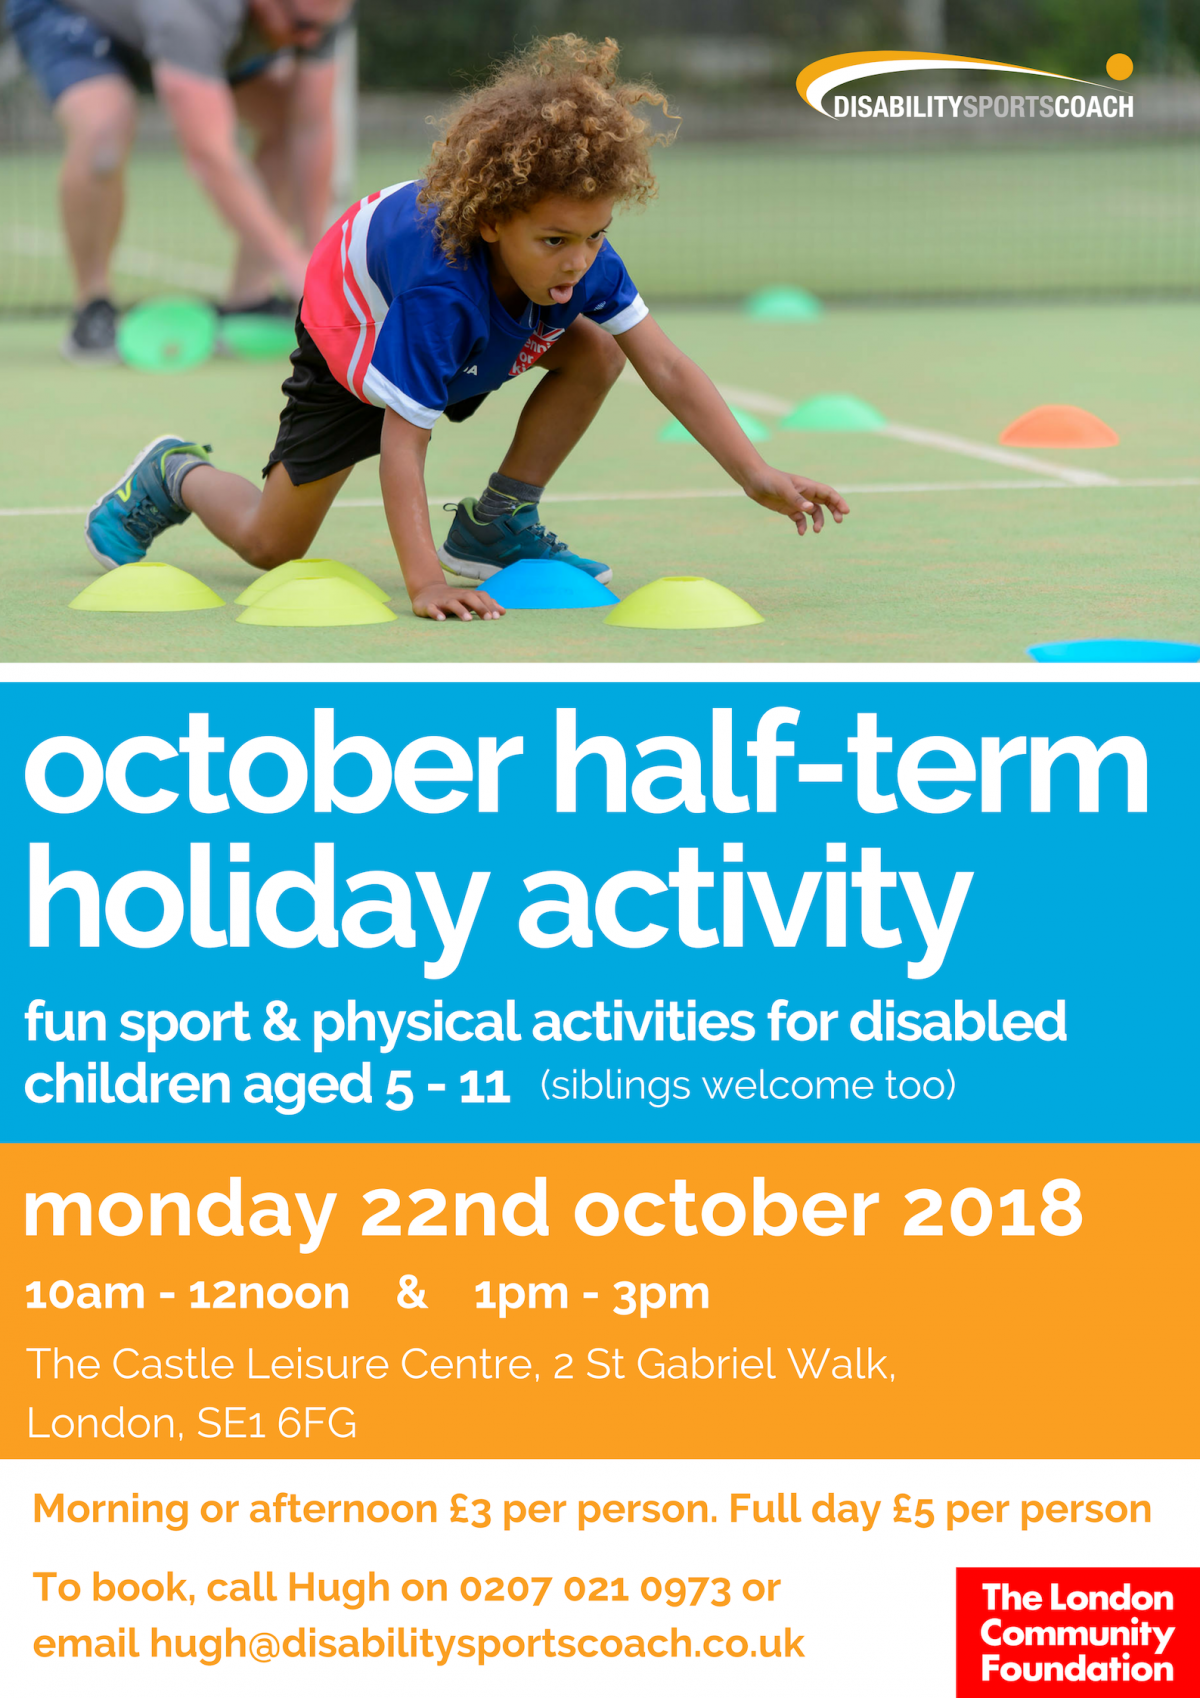 Disability Sports Coach Kids Camp 5-11 October 22nd 2018 Disabled Children Activities